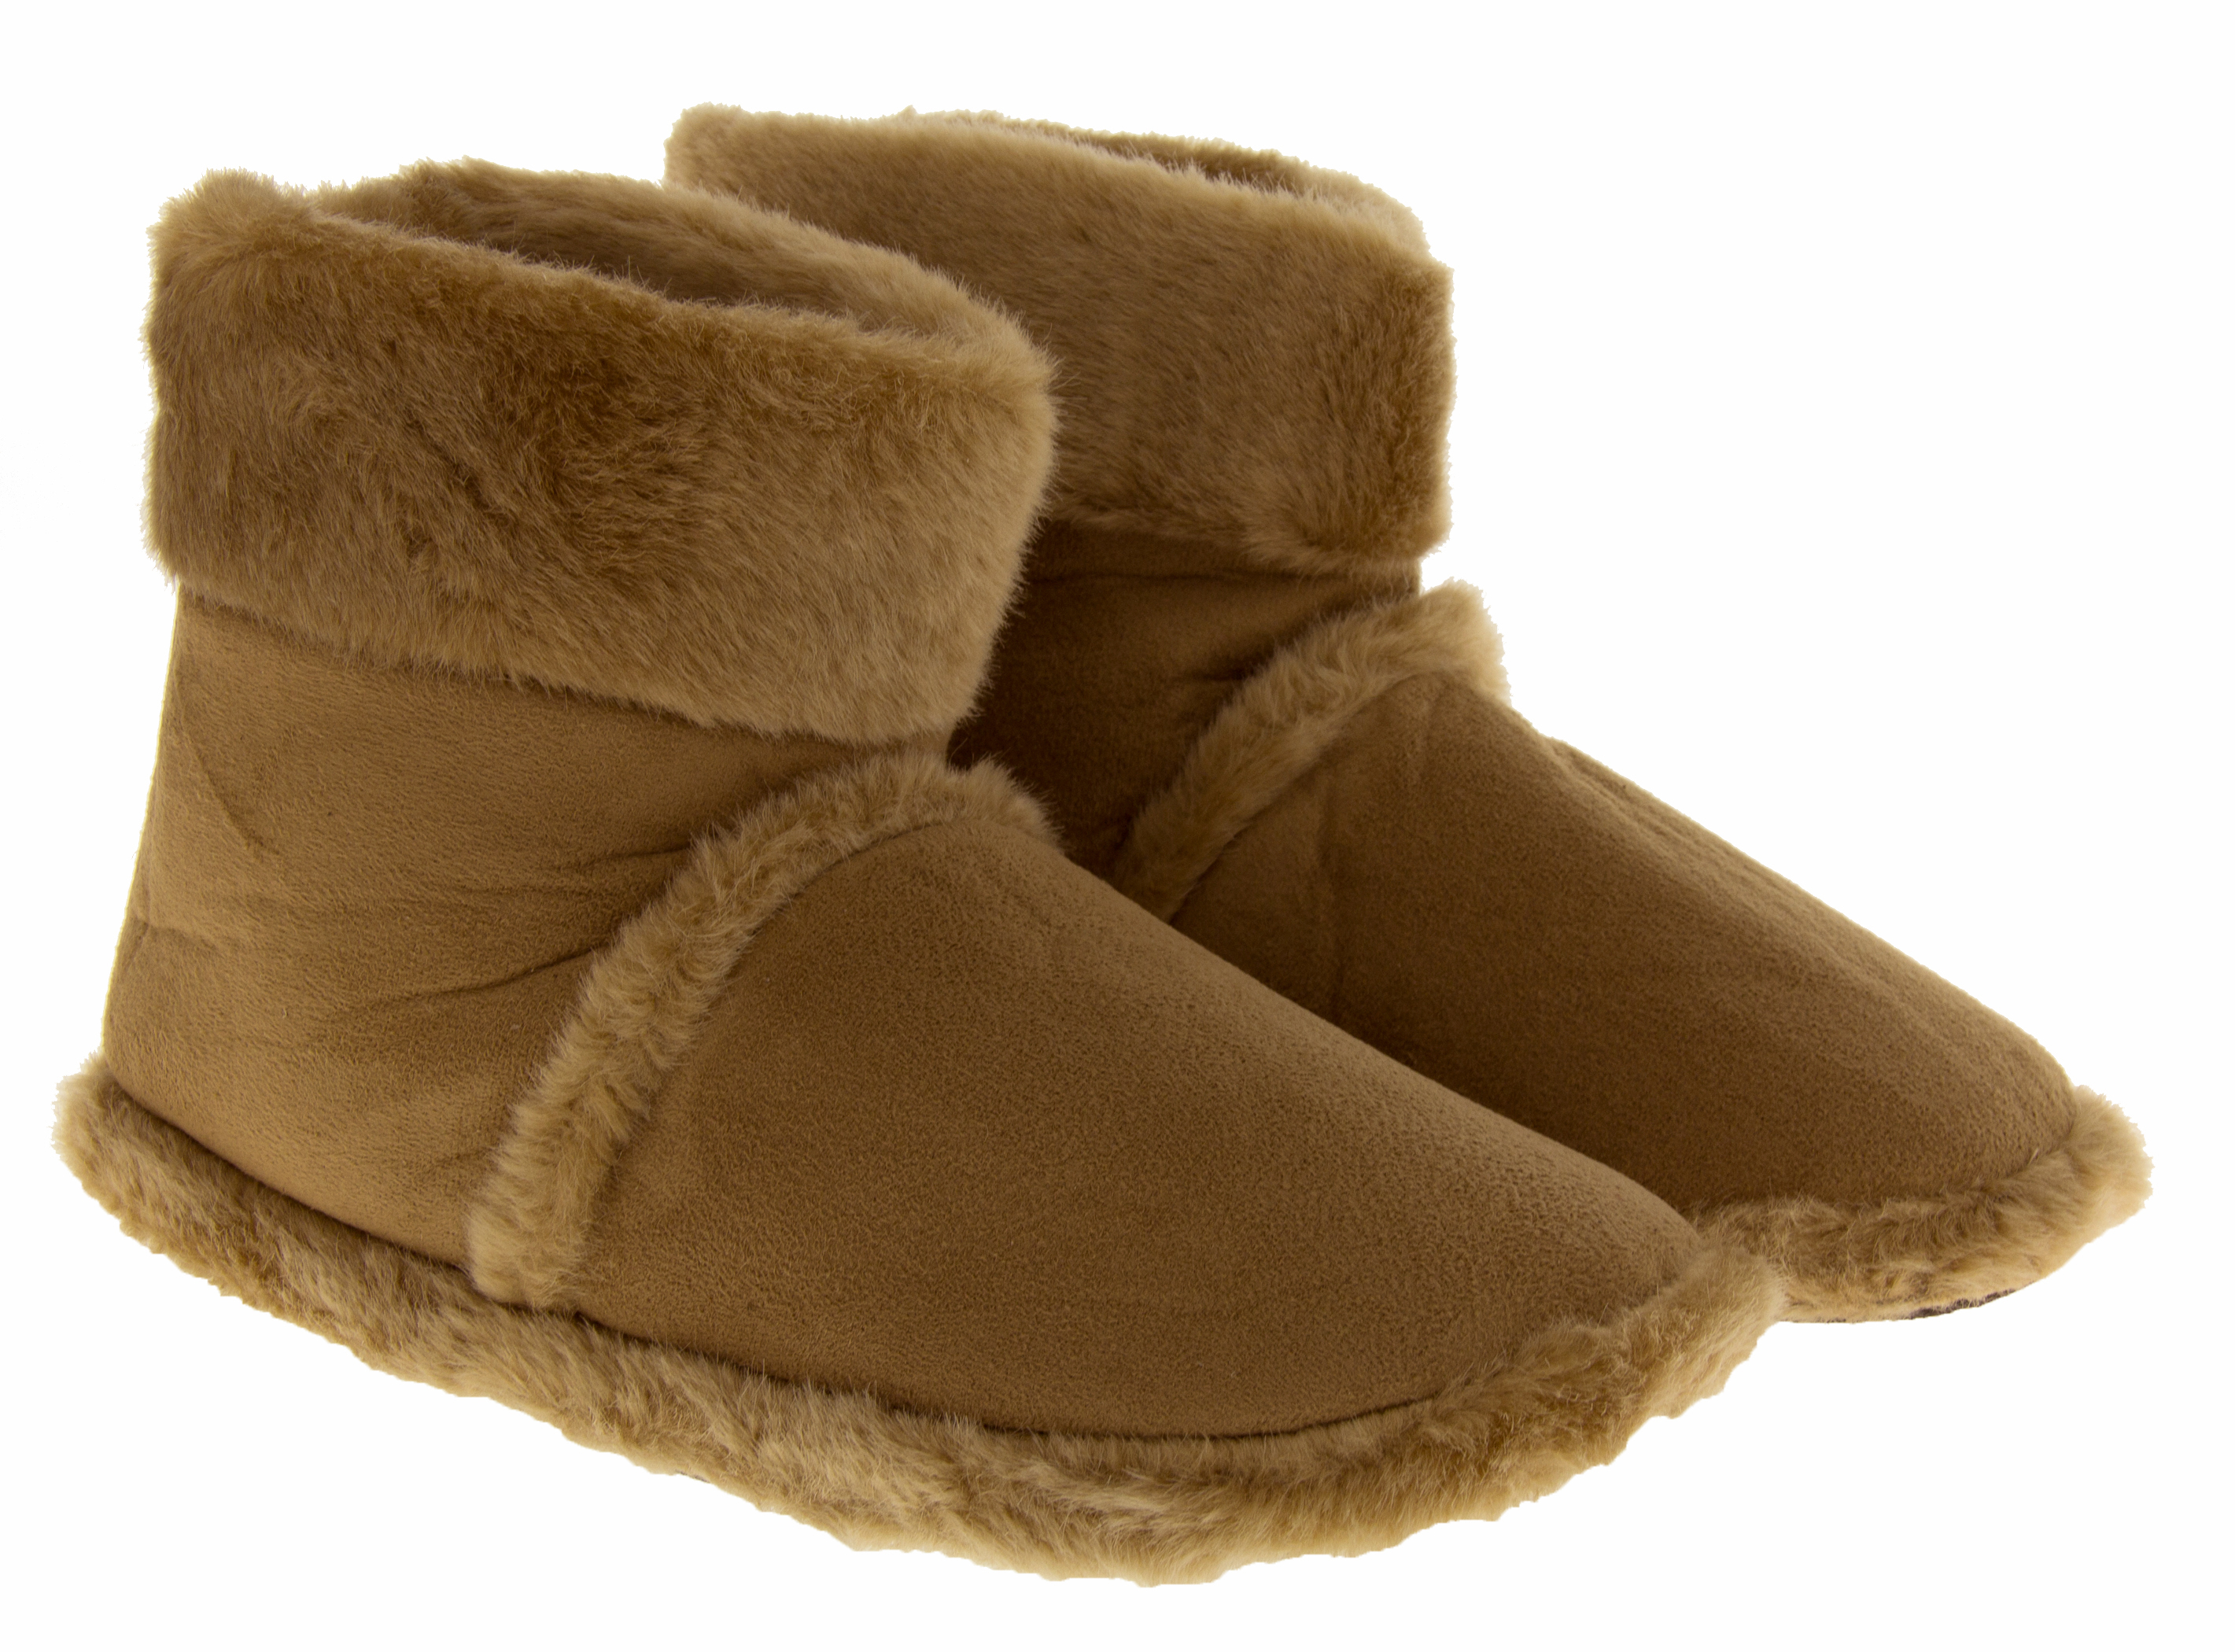 New Mens Slipper Boots Luxury Brown Sheepskin Effect Boot Slippers Size 7 8 9